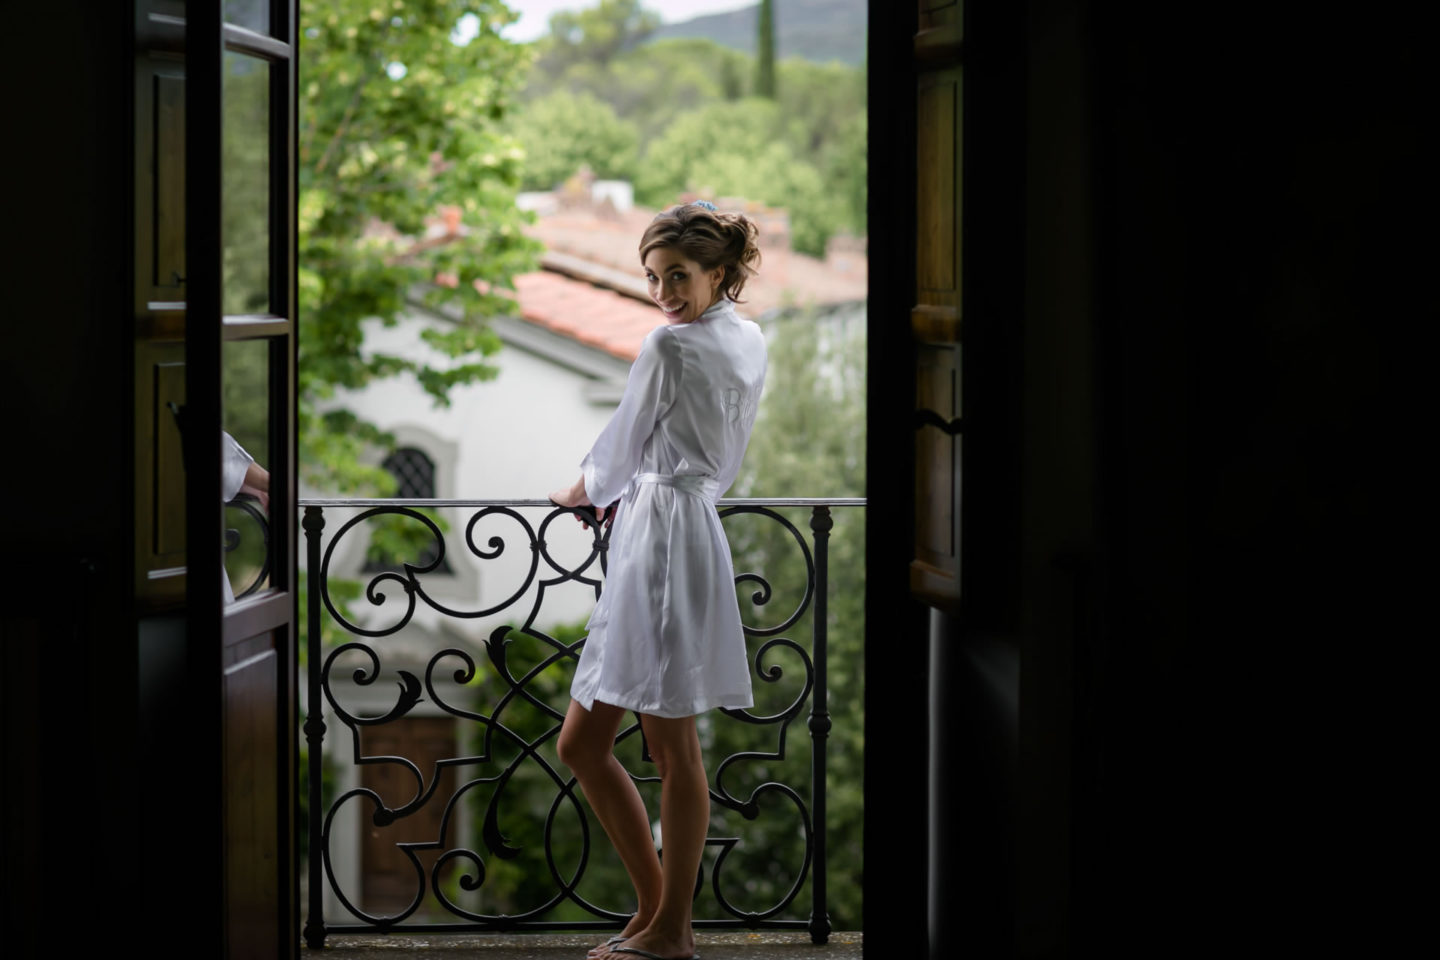 Waiting :: Amazing wedding day at Il Borro :: Luxury wedding photography - 3 :: Waiting